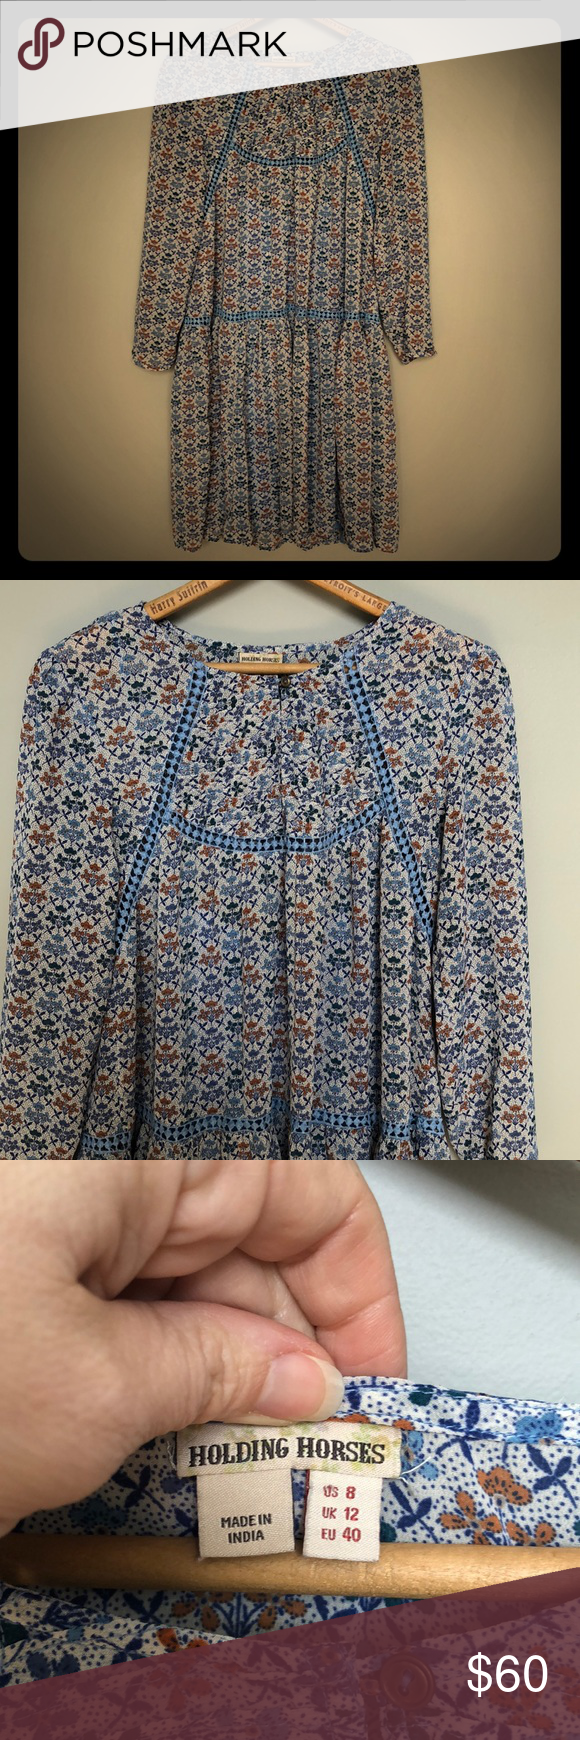 033f24d150743 Holding horses dress Anthropologie holding horses dress in a size 8. Love  the flower and crochet like detailing. Sheer dress with slip nwot  Anthropologie ...